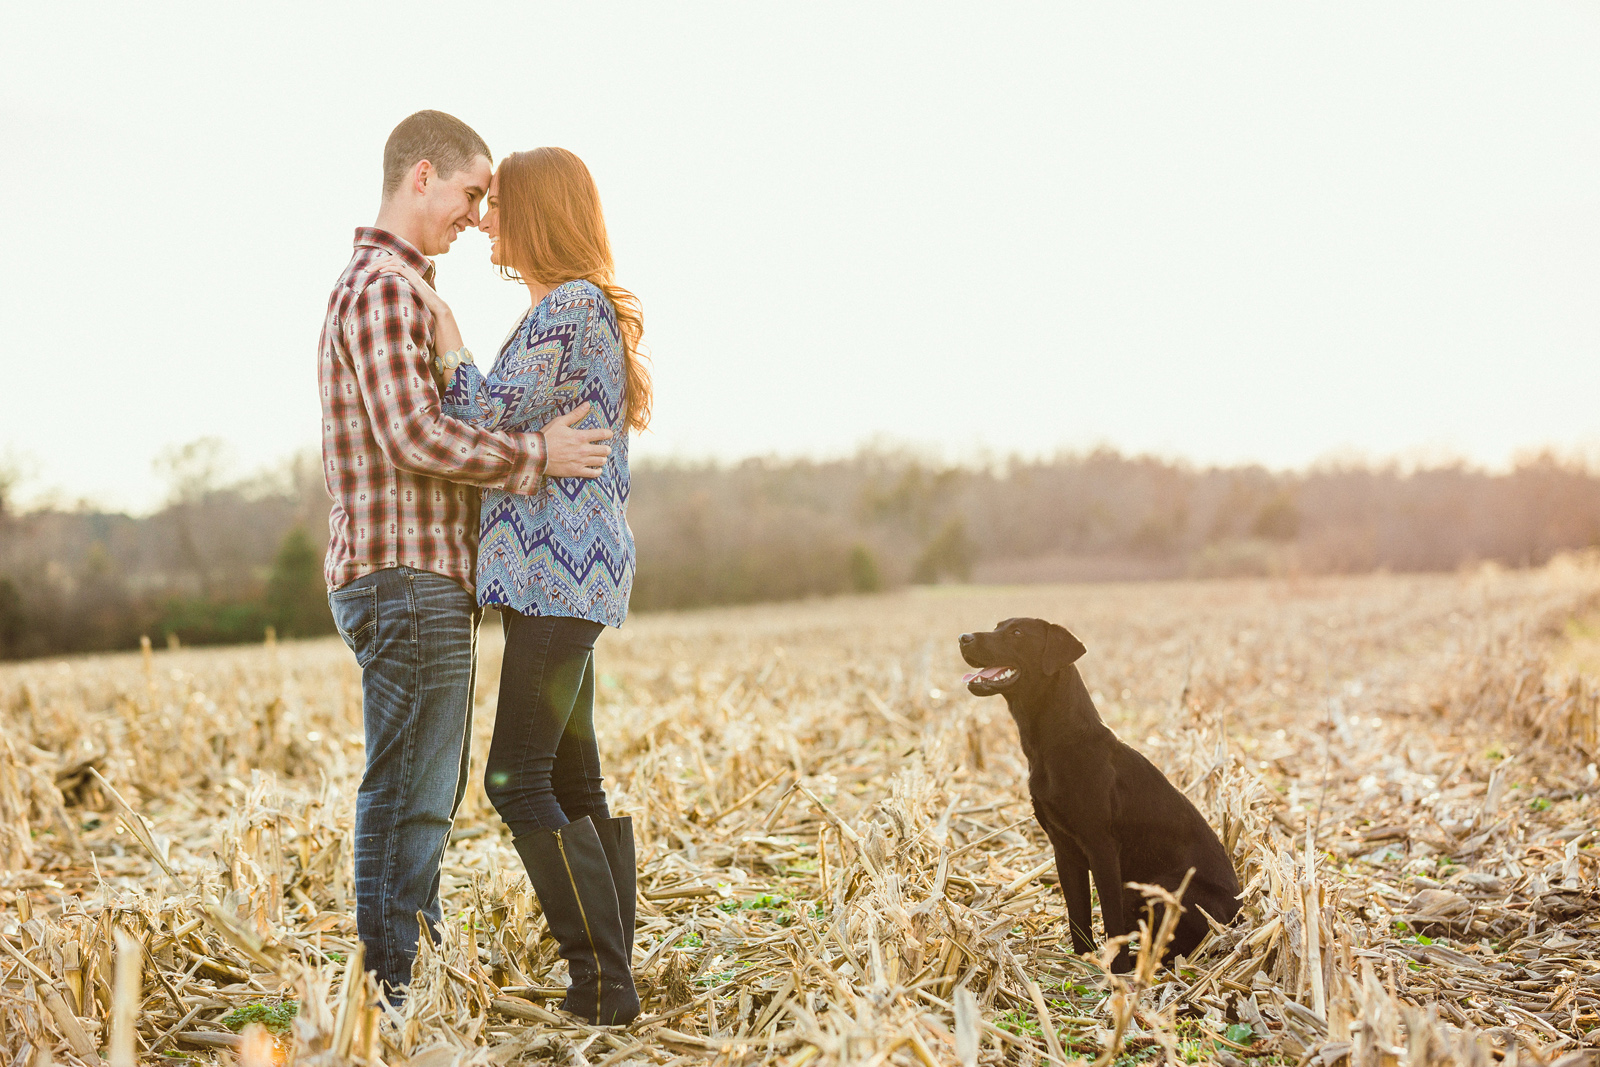 Oldani-Photography-St-Charles-August-A-Busch-Memorial-Area-Engagement-Session-engagement-photos_20141128_163935.jpg